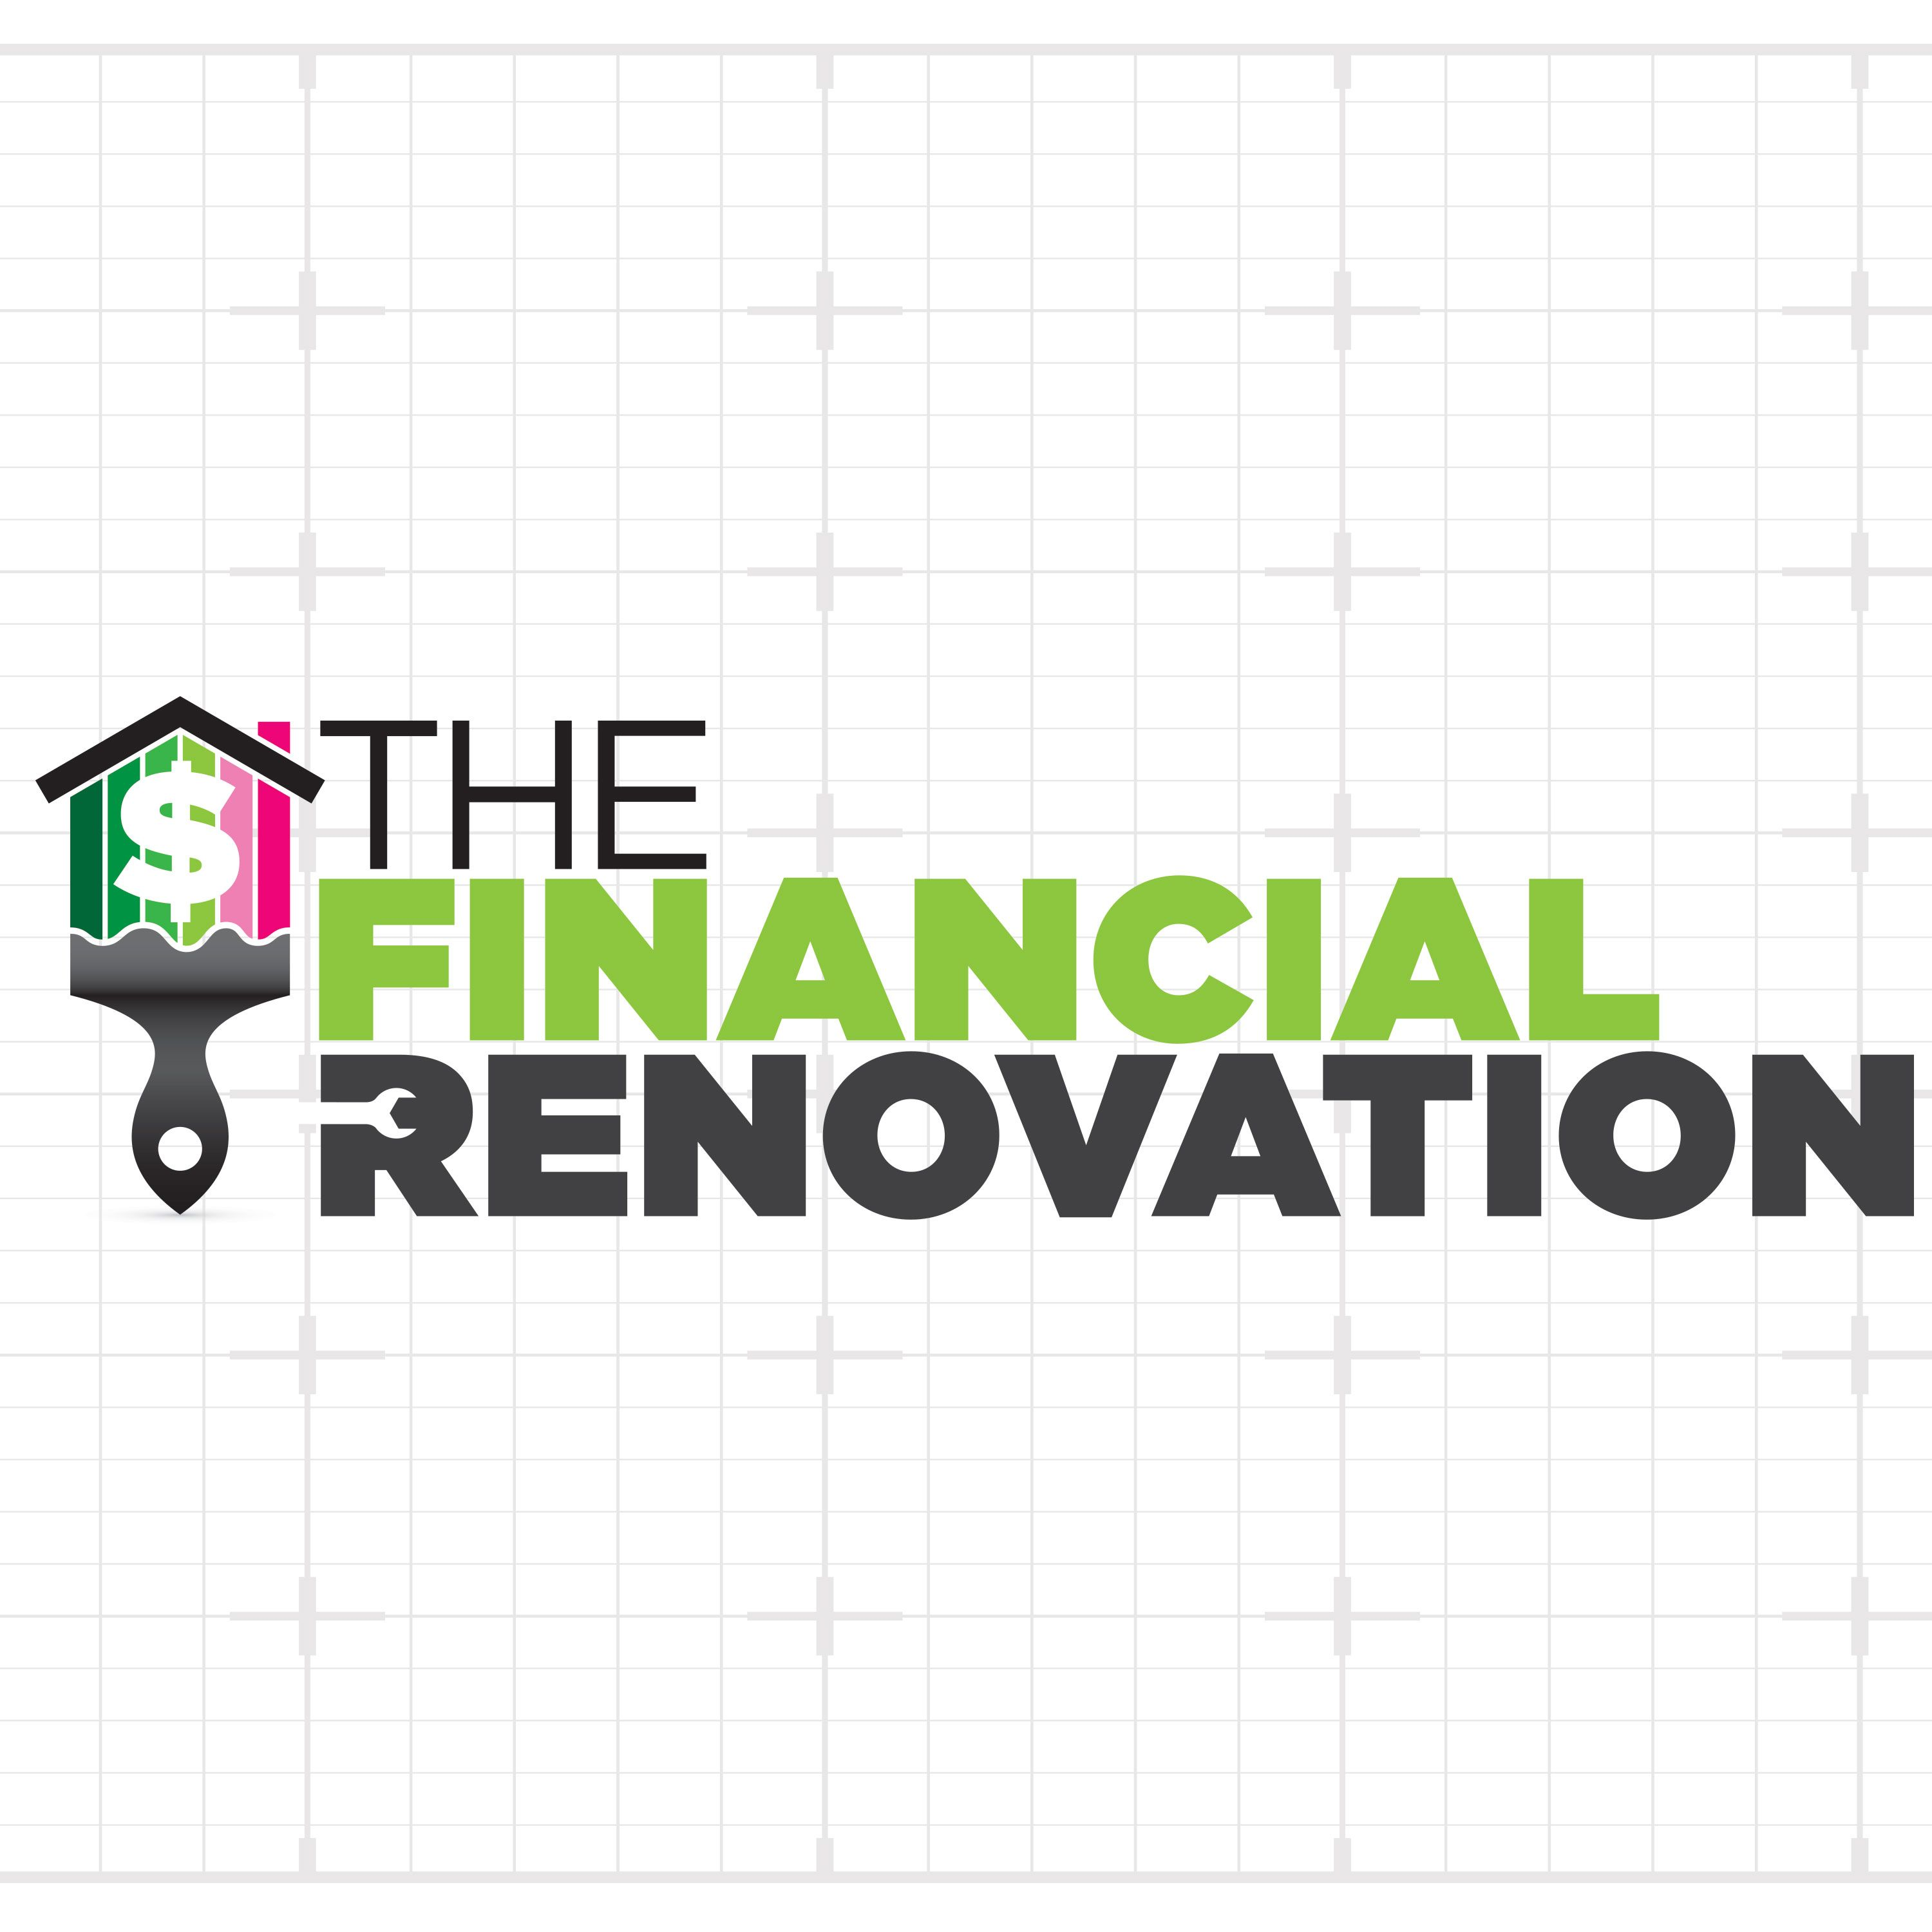 Financial Renovation: Create Your 2016 Financial Budget